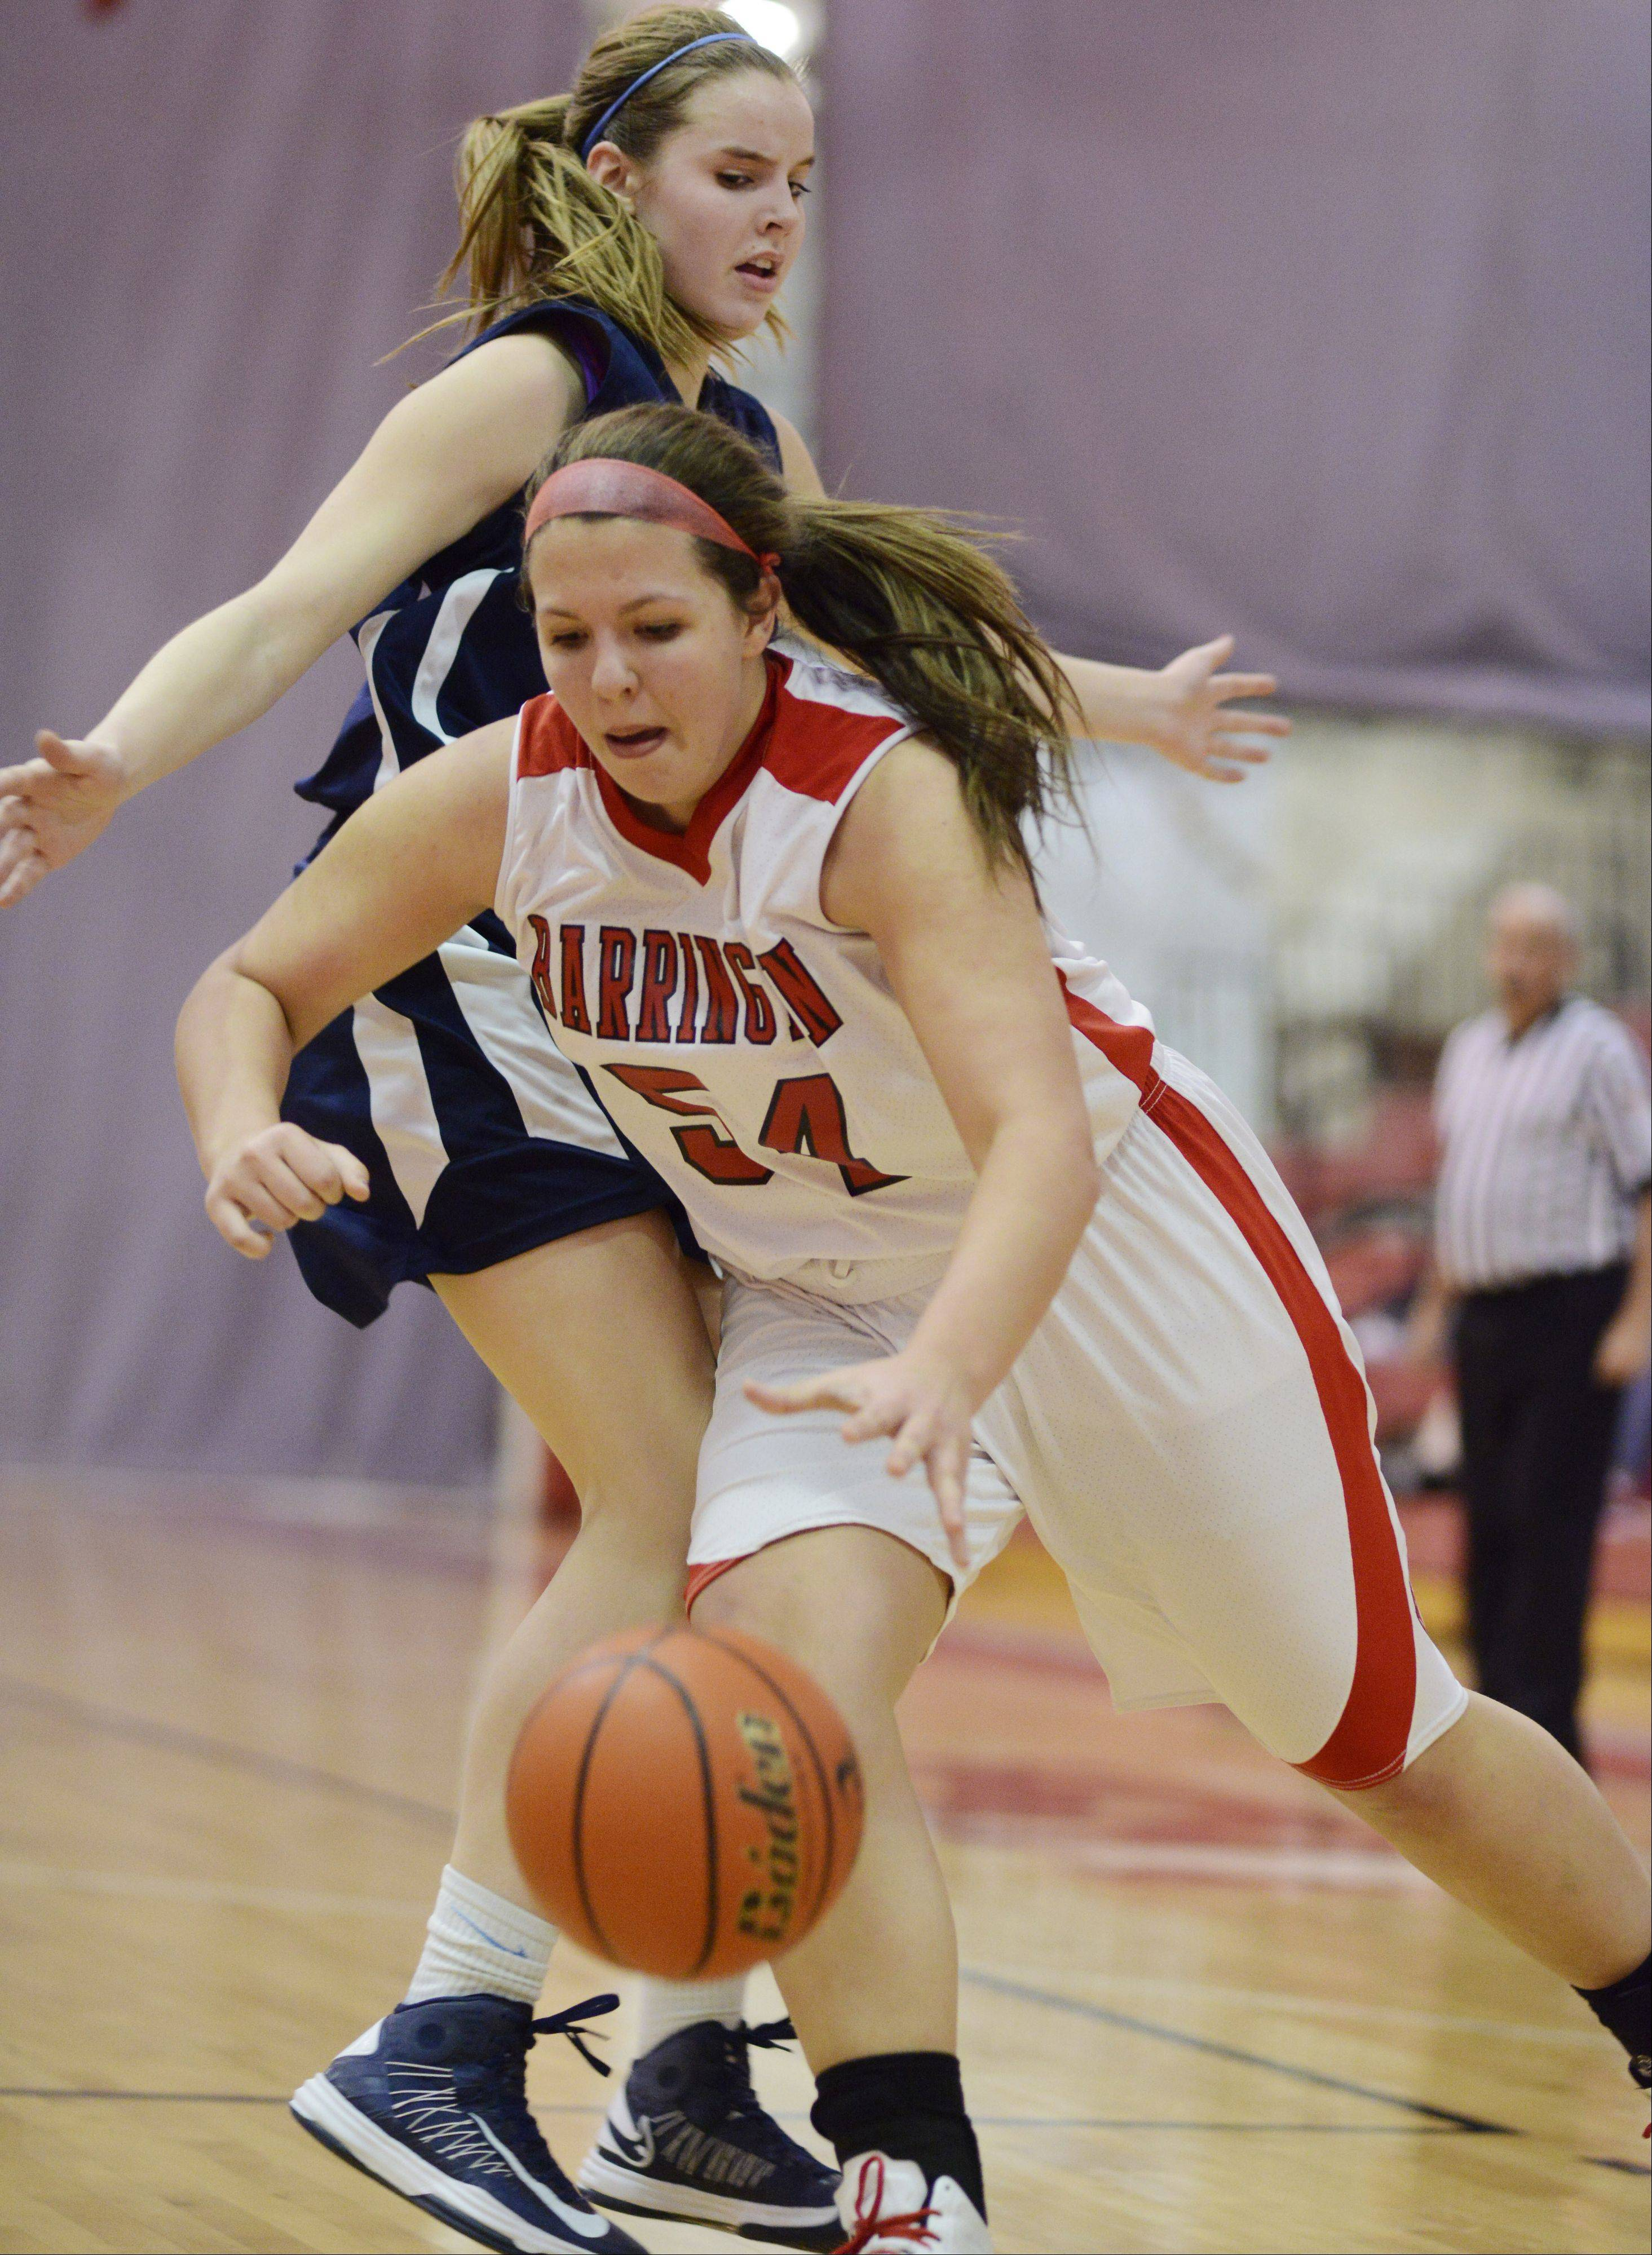 Barrington's Alexa Resch drives to the basket against the defense of Prospect's Catherine Sherwood.